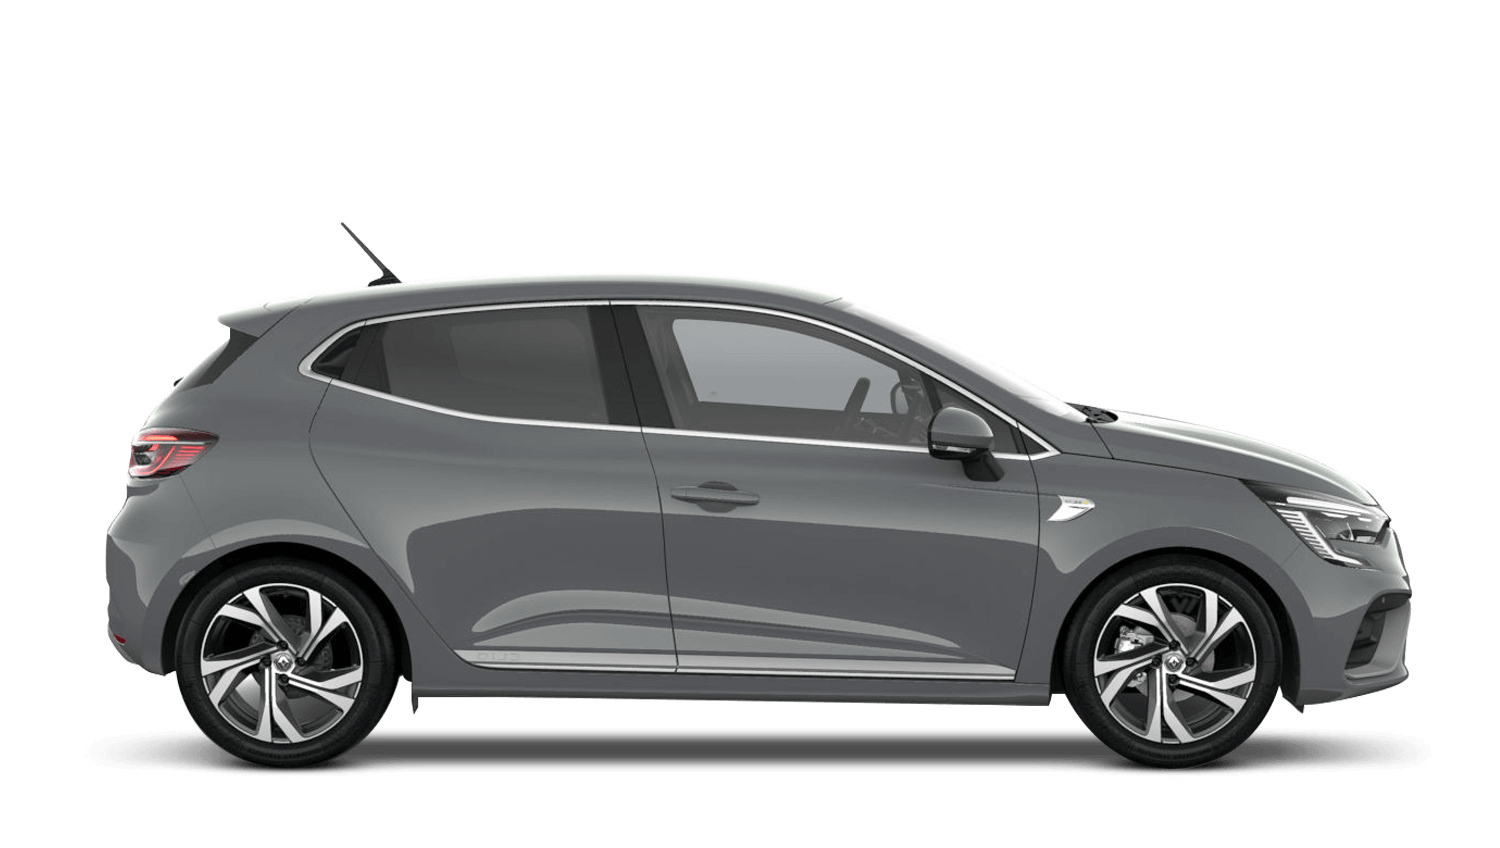 Urban Grey All-New Renault CLIO